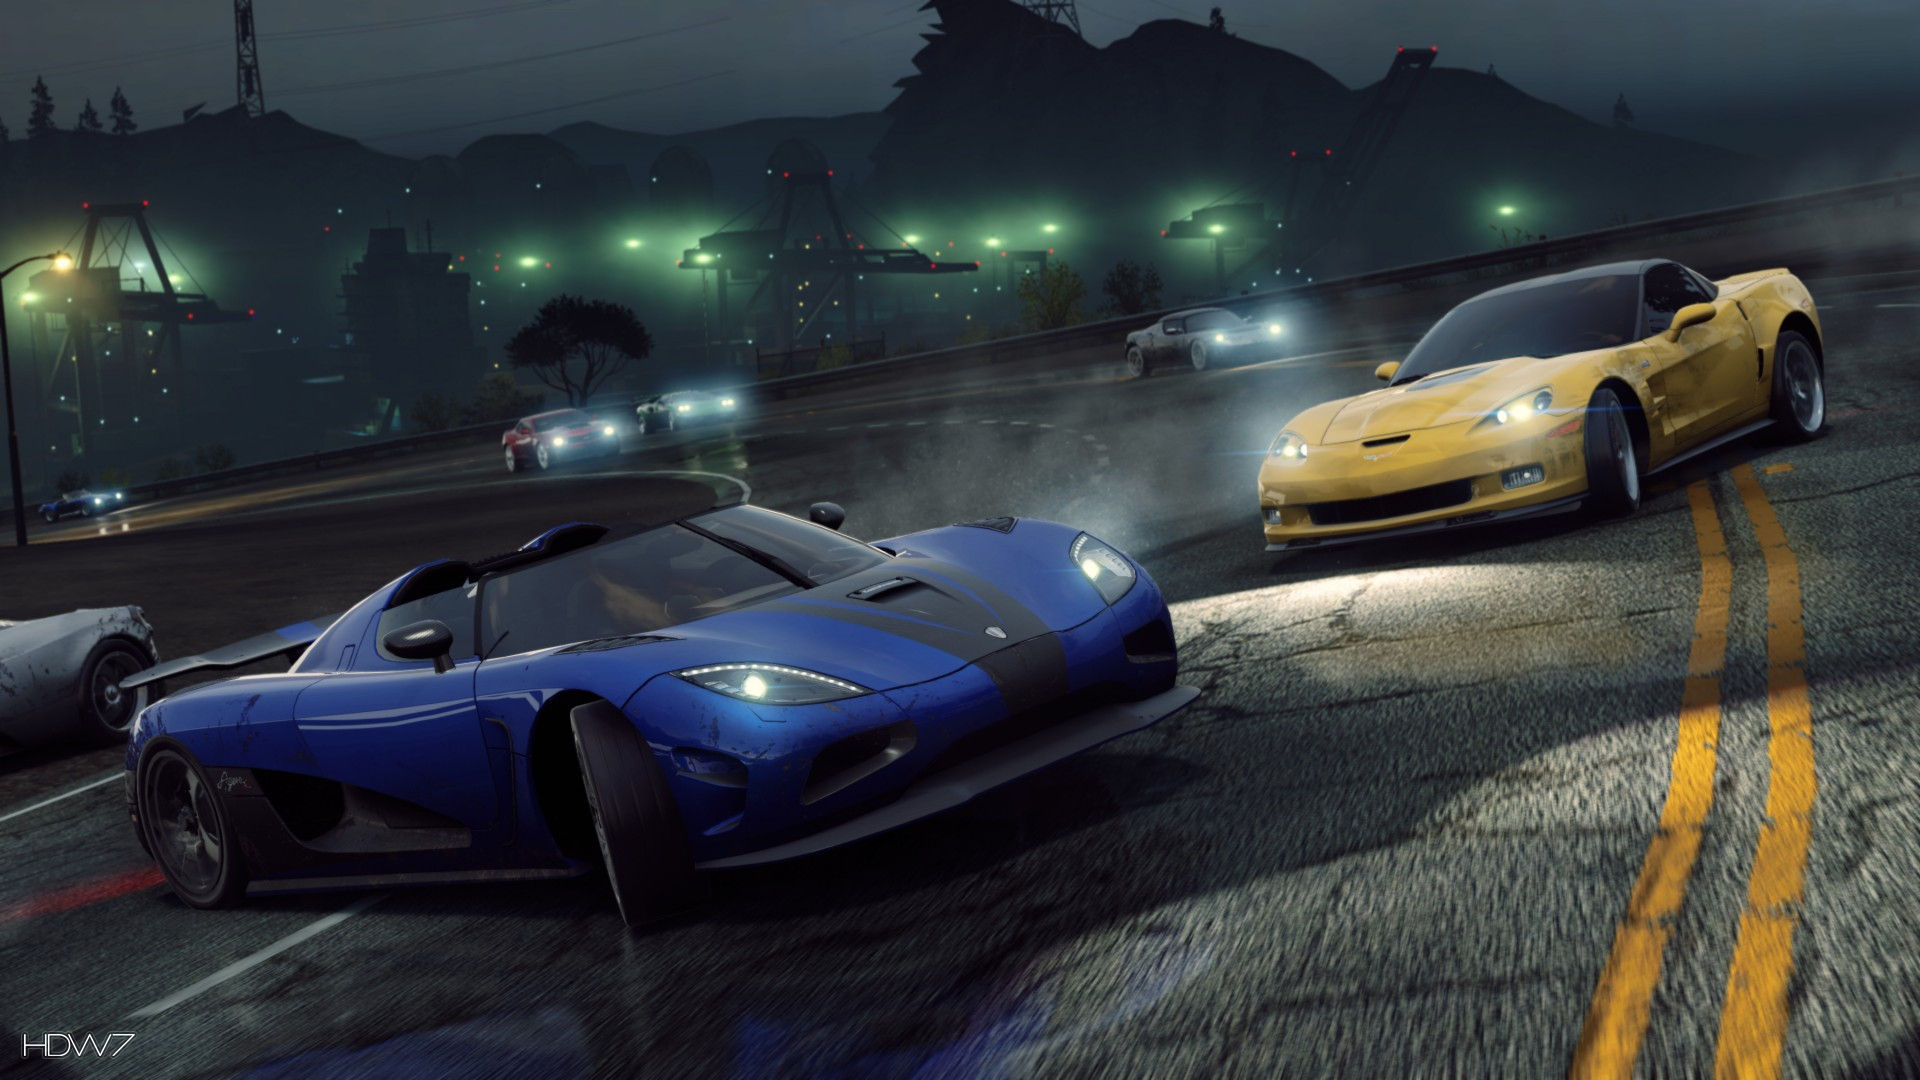 Need For Speed Most Wanted 2012 Koenigsegg Agera R Widescreen Hd Wallpaper